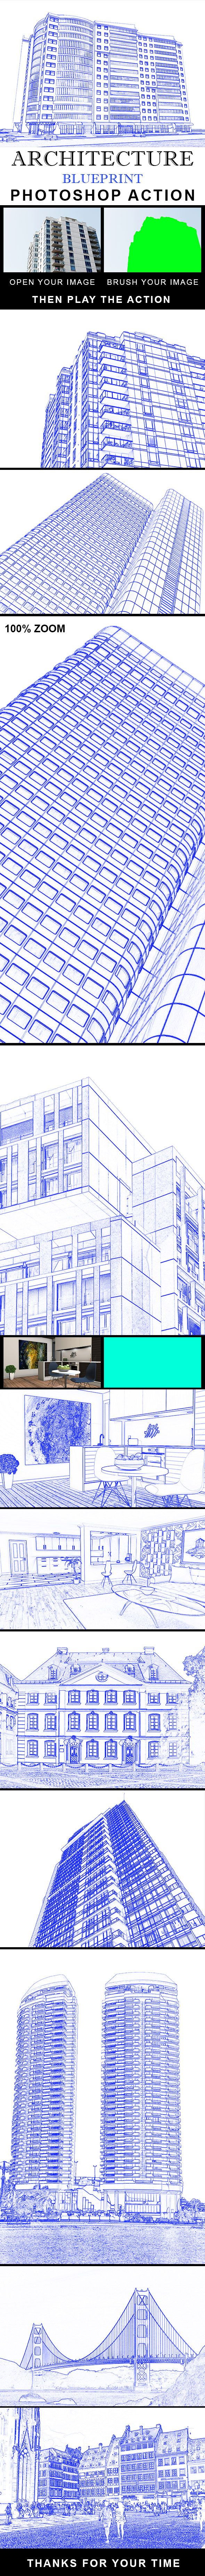 Architecture Blue Print Photoshop Action - #Photo #Effects #Actions